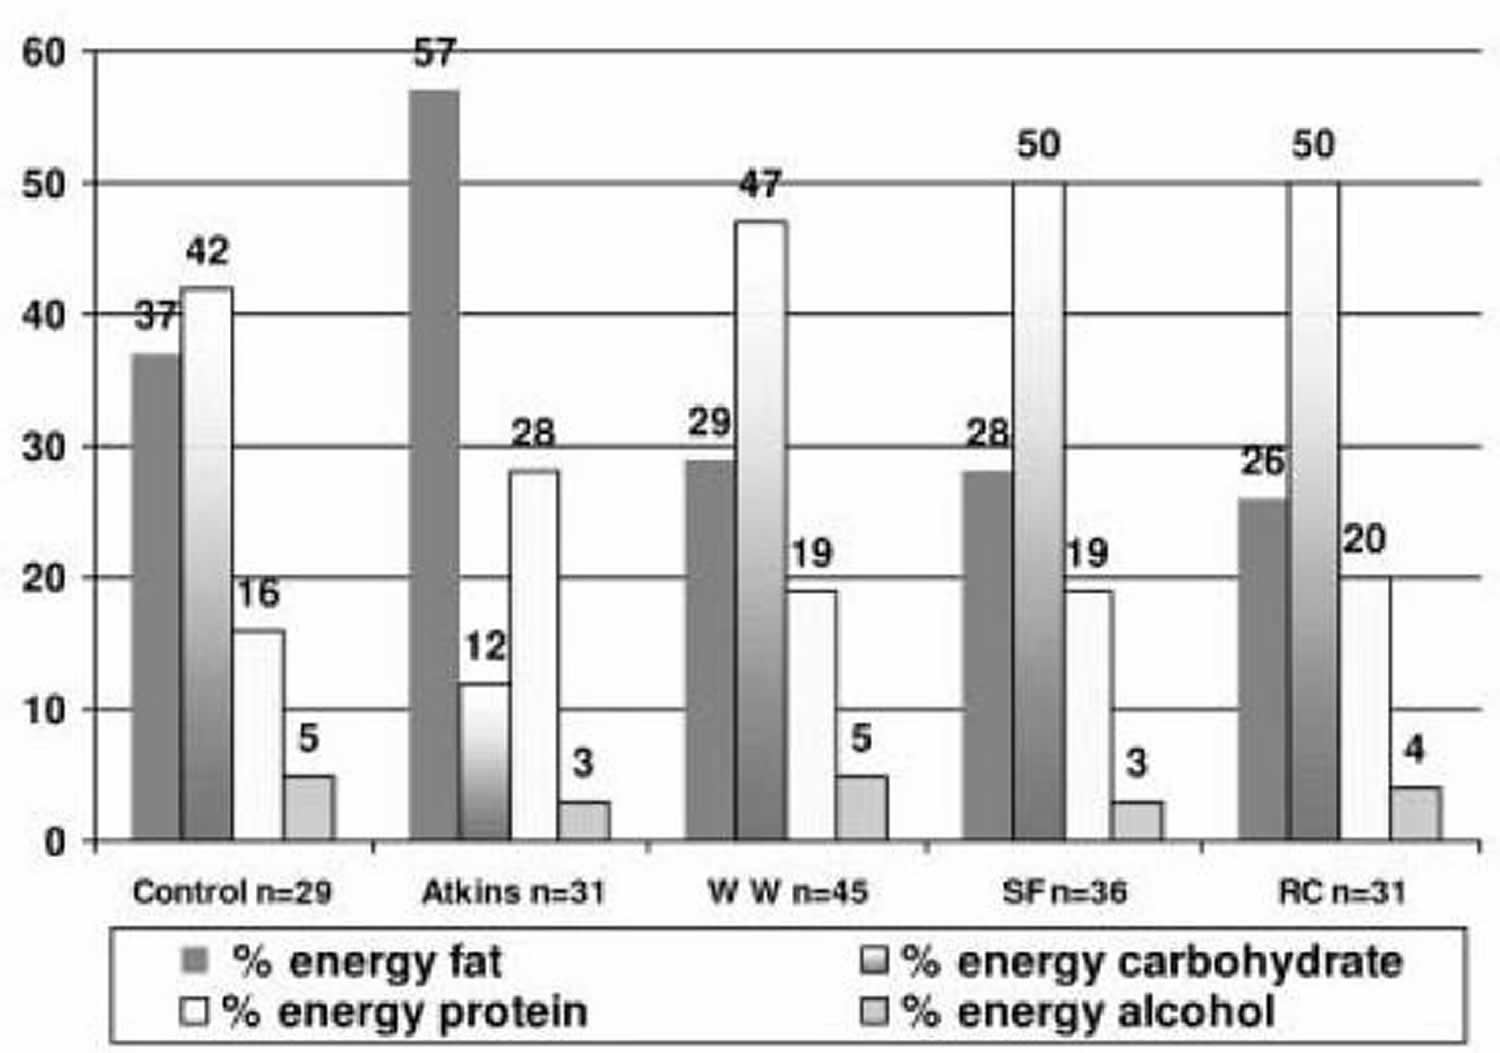 Alteration in percentage of energy from macronutrients